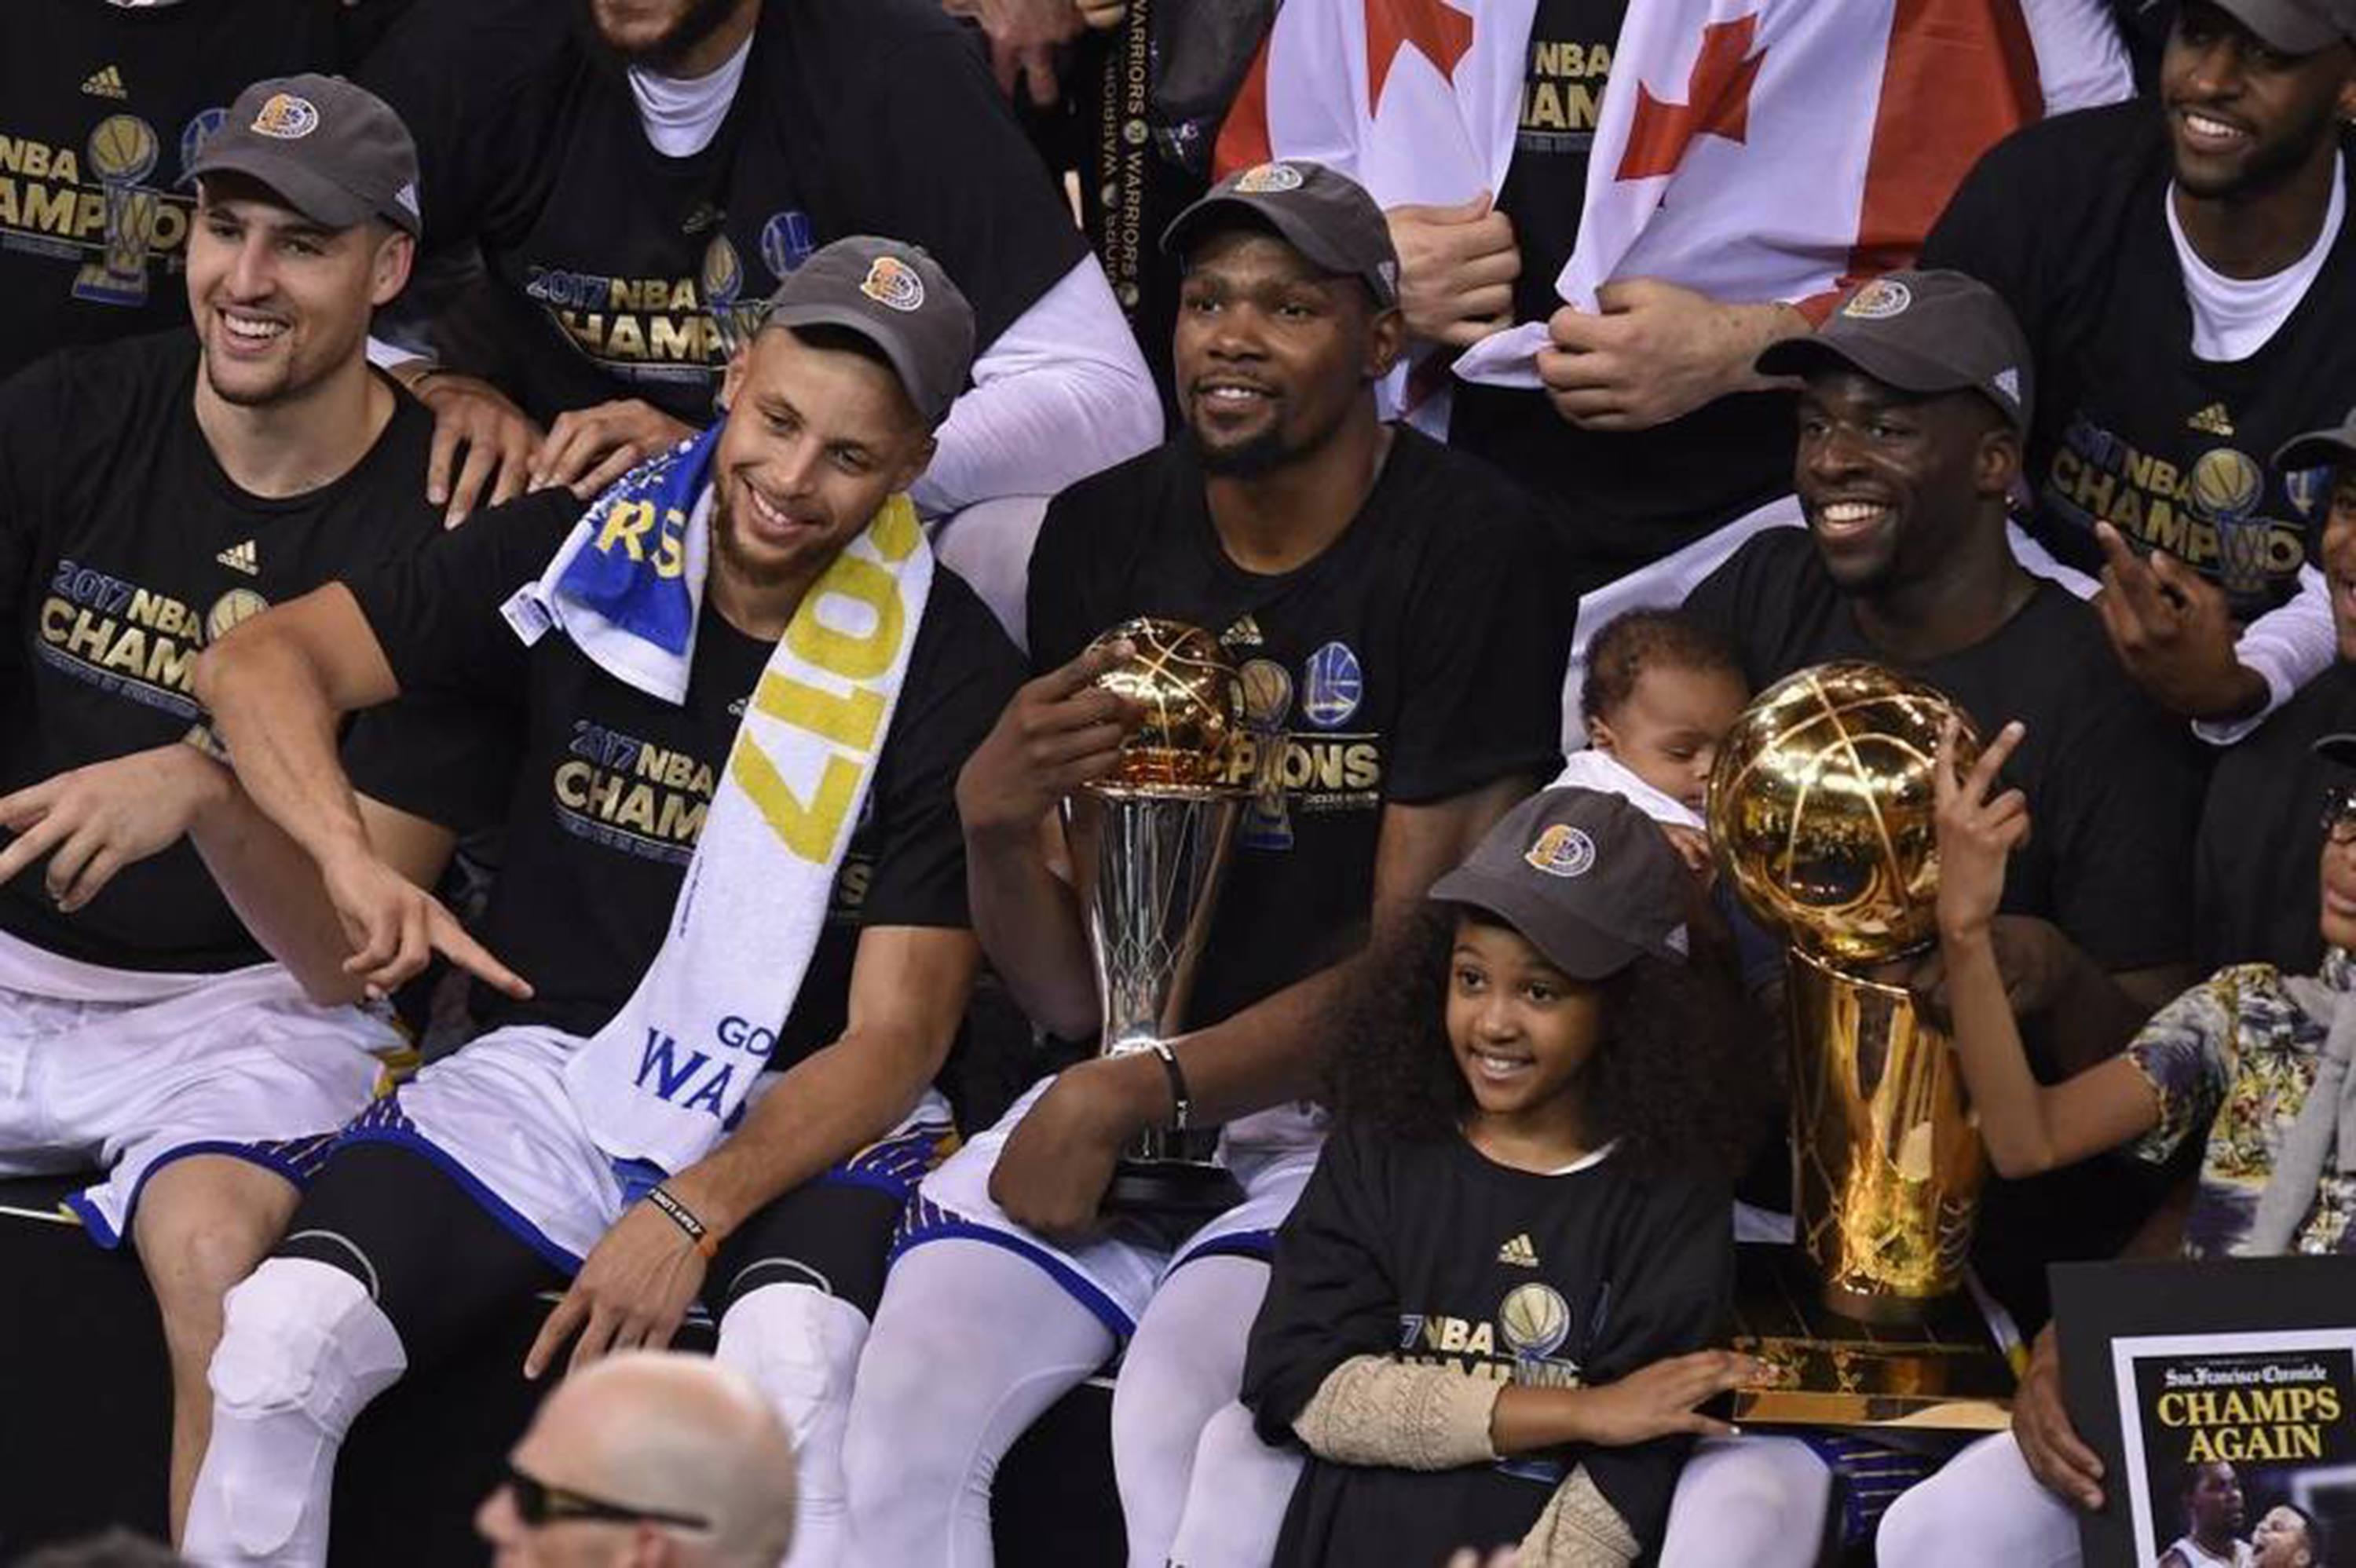 Parade for Warriors on Thursday. Will NBA champs visit White House?